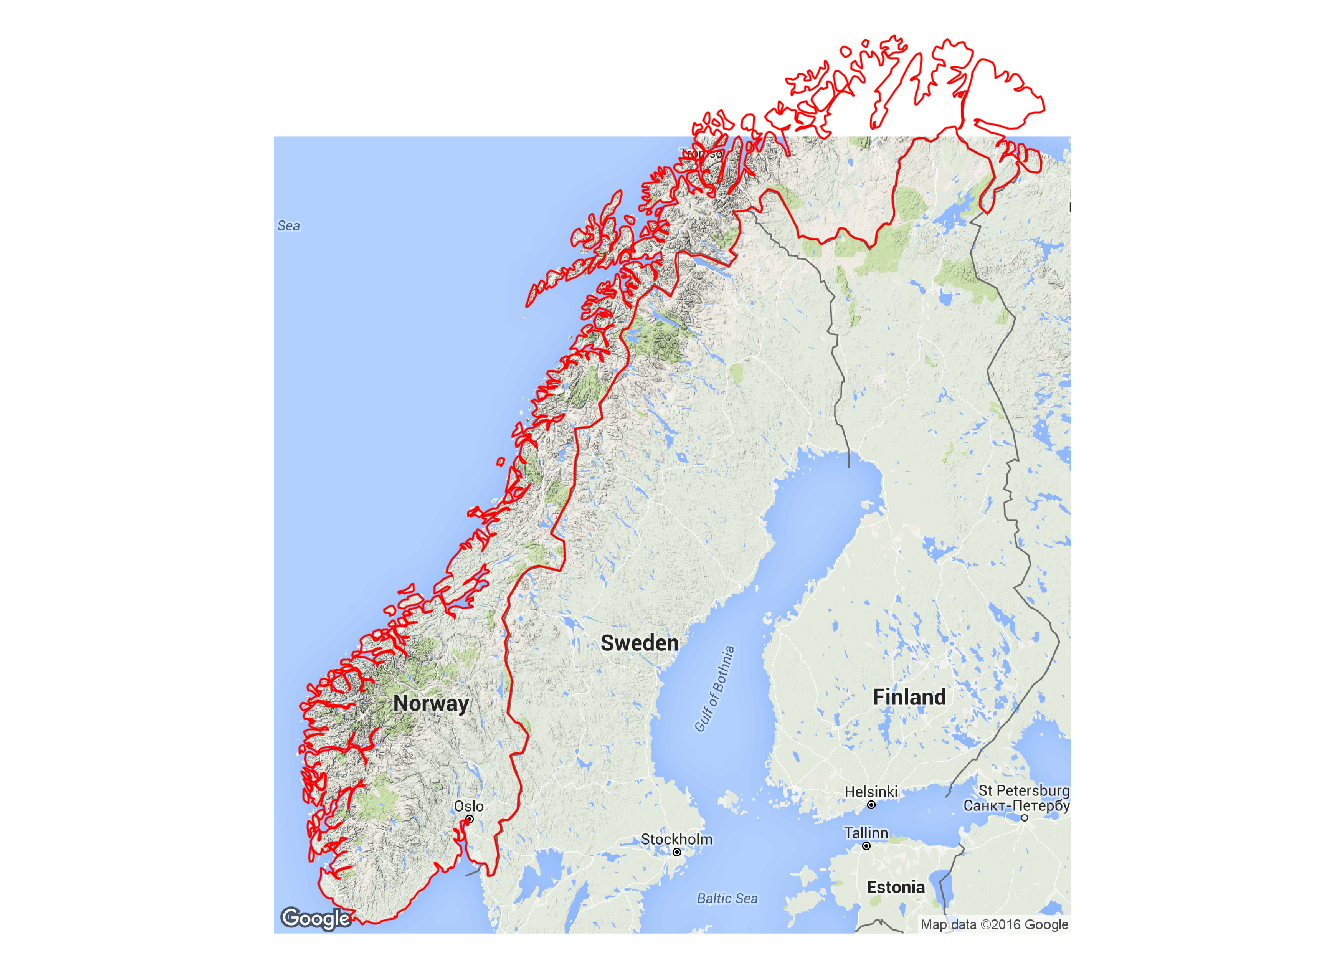 Sp Gallery - Norway map data